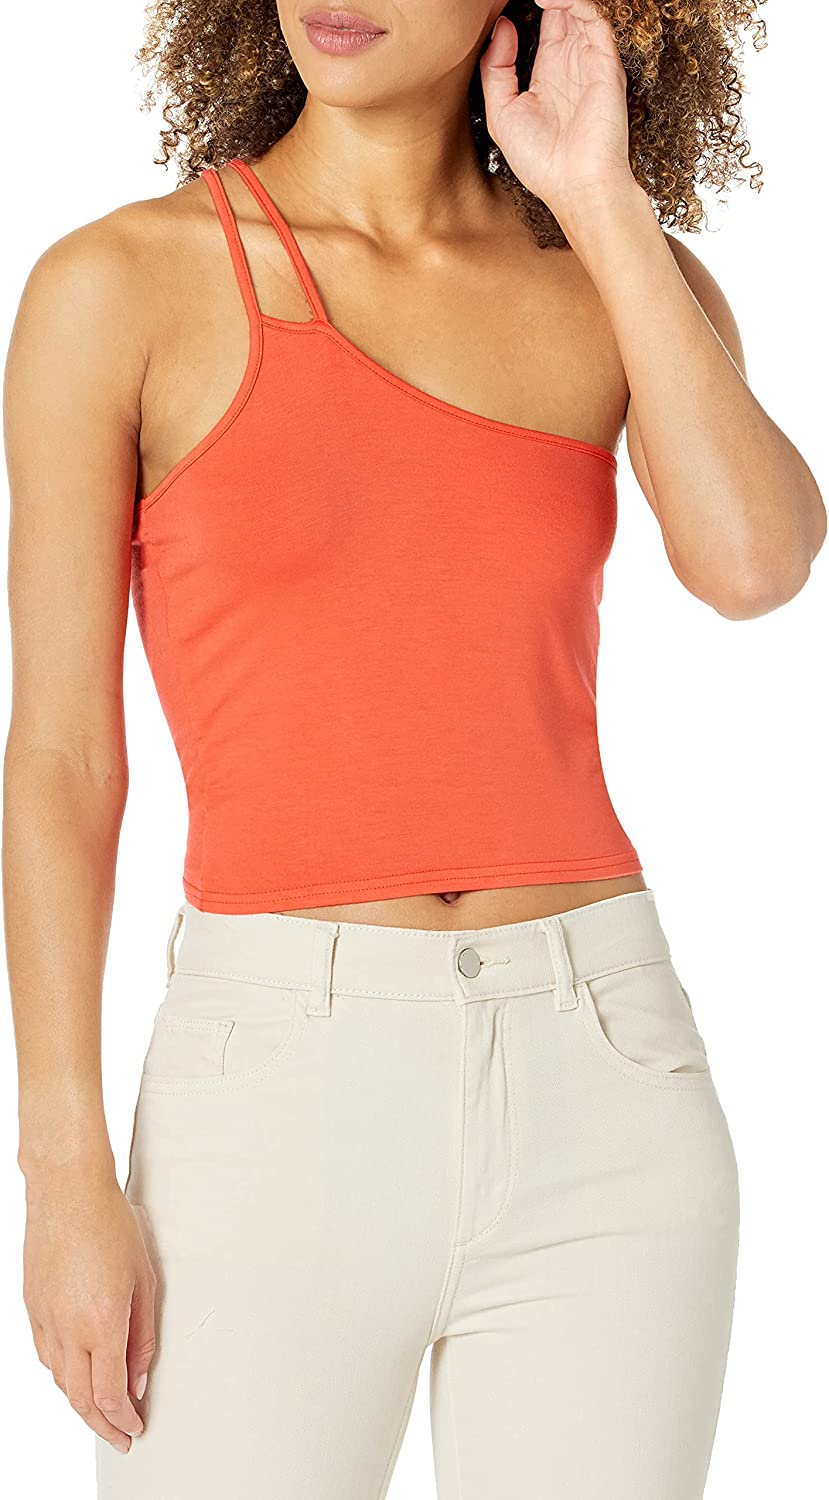 KENDALL + KYLIE Women's Plus Size Crop Top with Asymmetric Straps